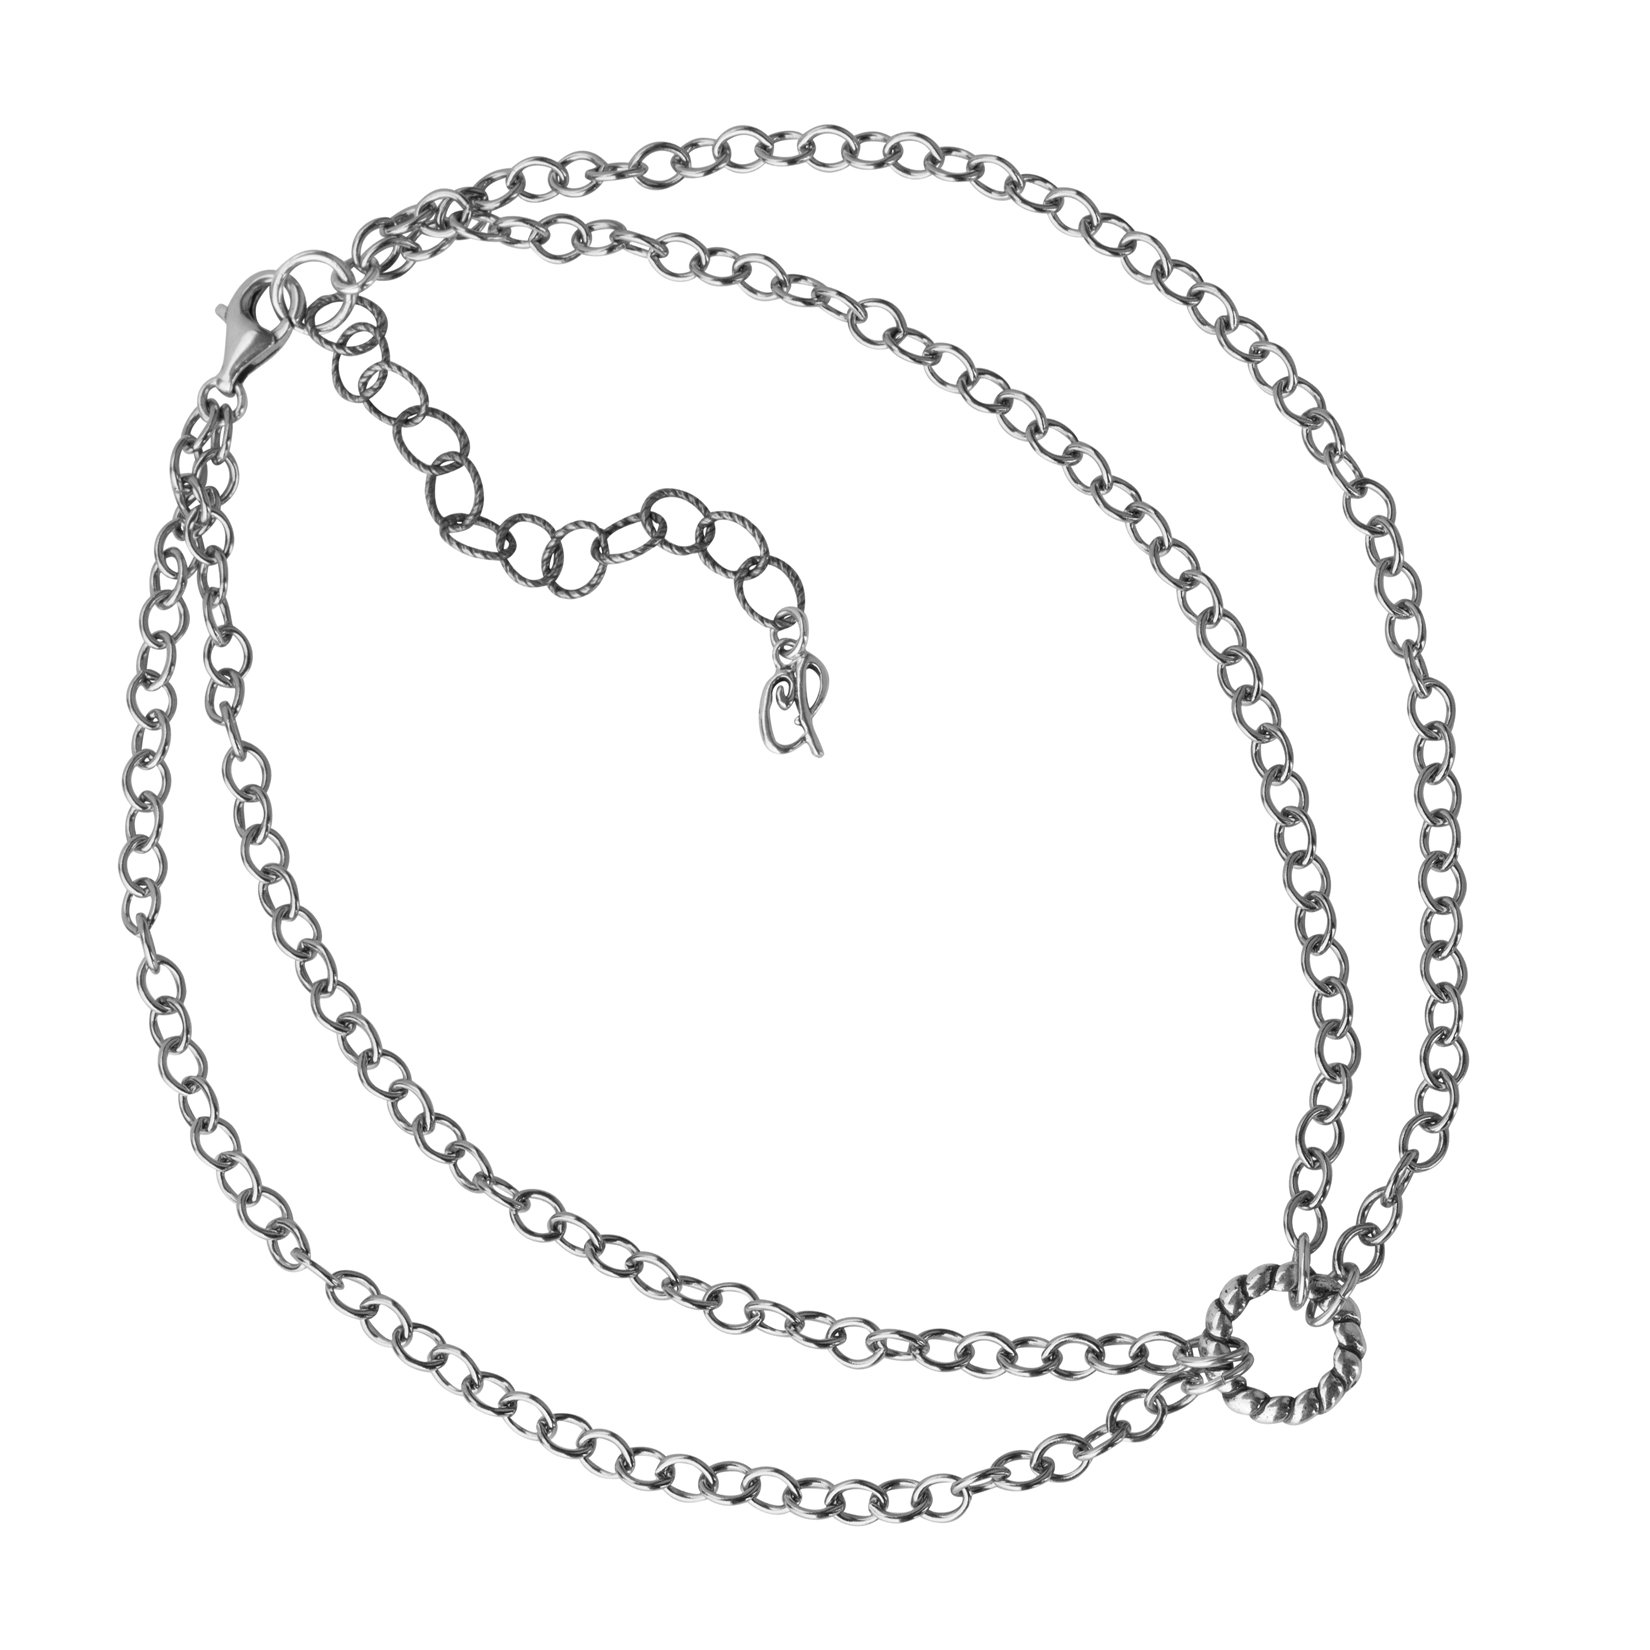 Carolyn Pollack Sterling Silver Chain Double Strand Choker Necklace